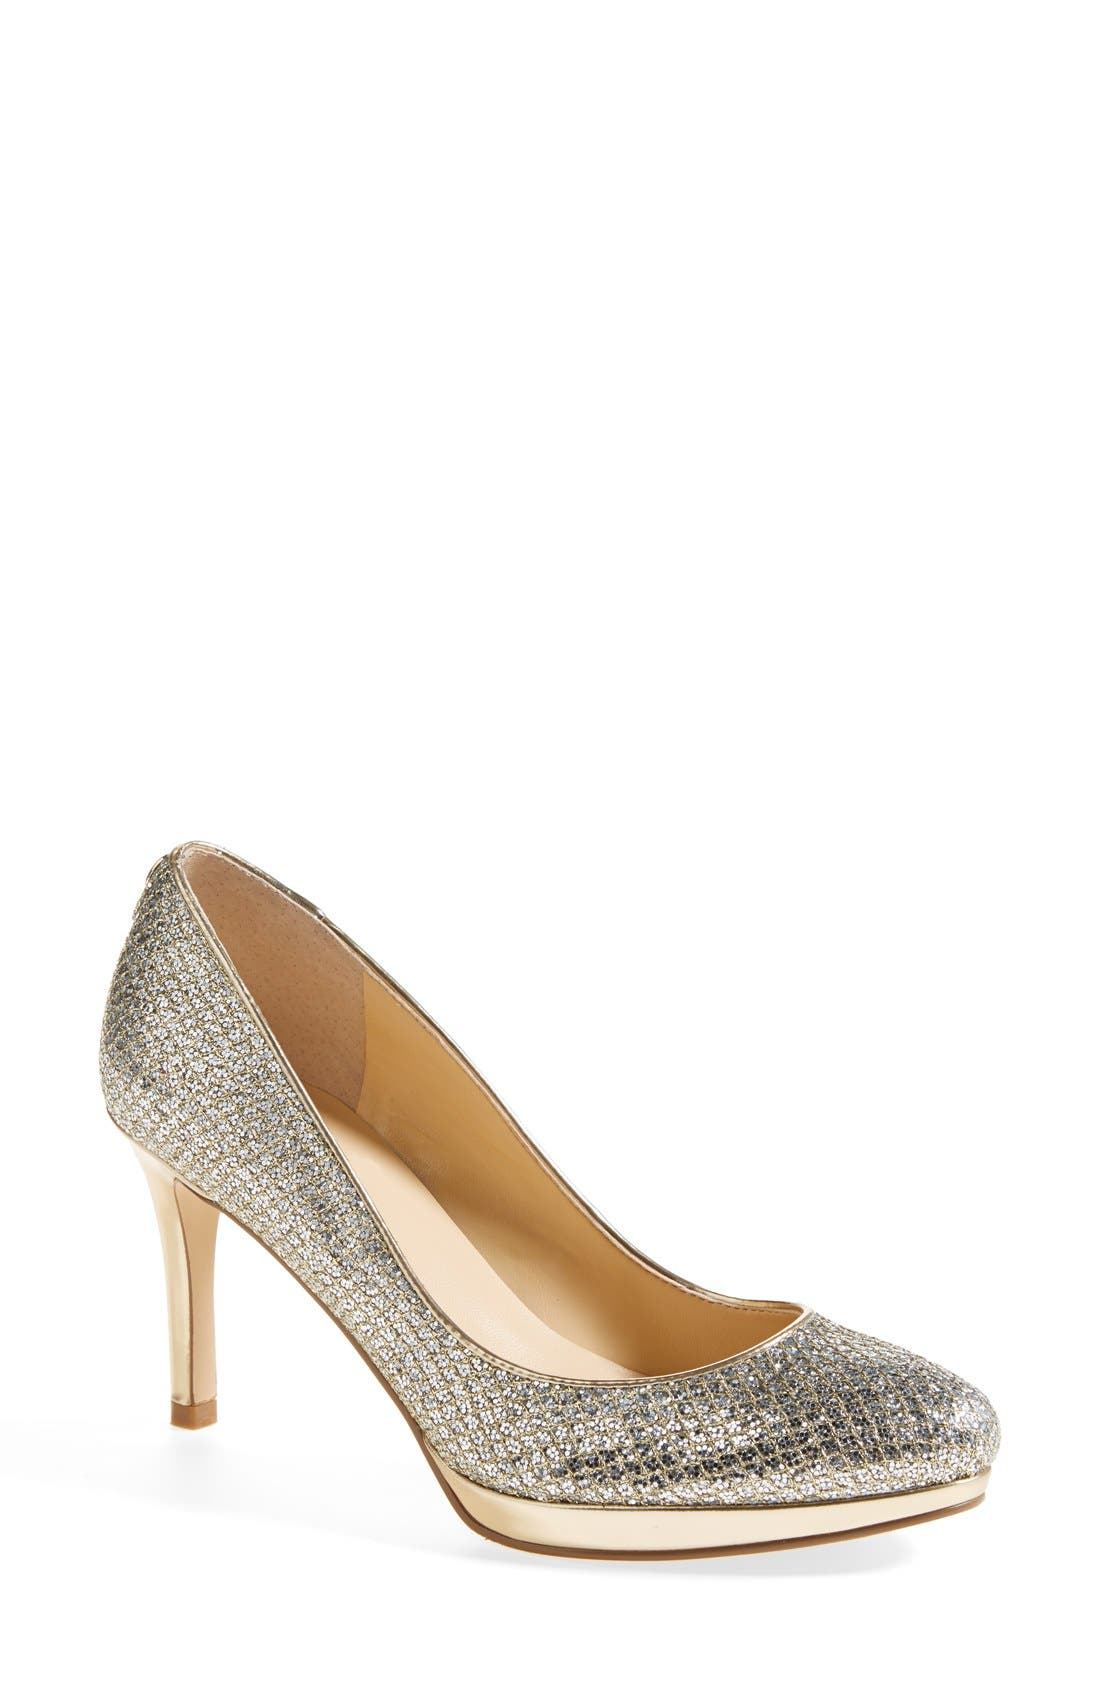 Main Image - Ivanka Trump 'Sophia' Pump (Nordstrom Exclusive)